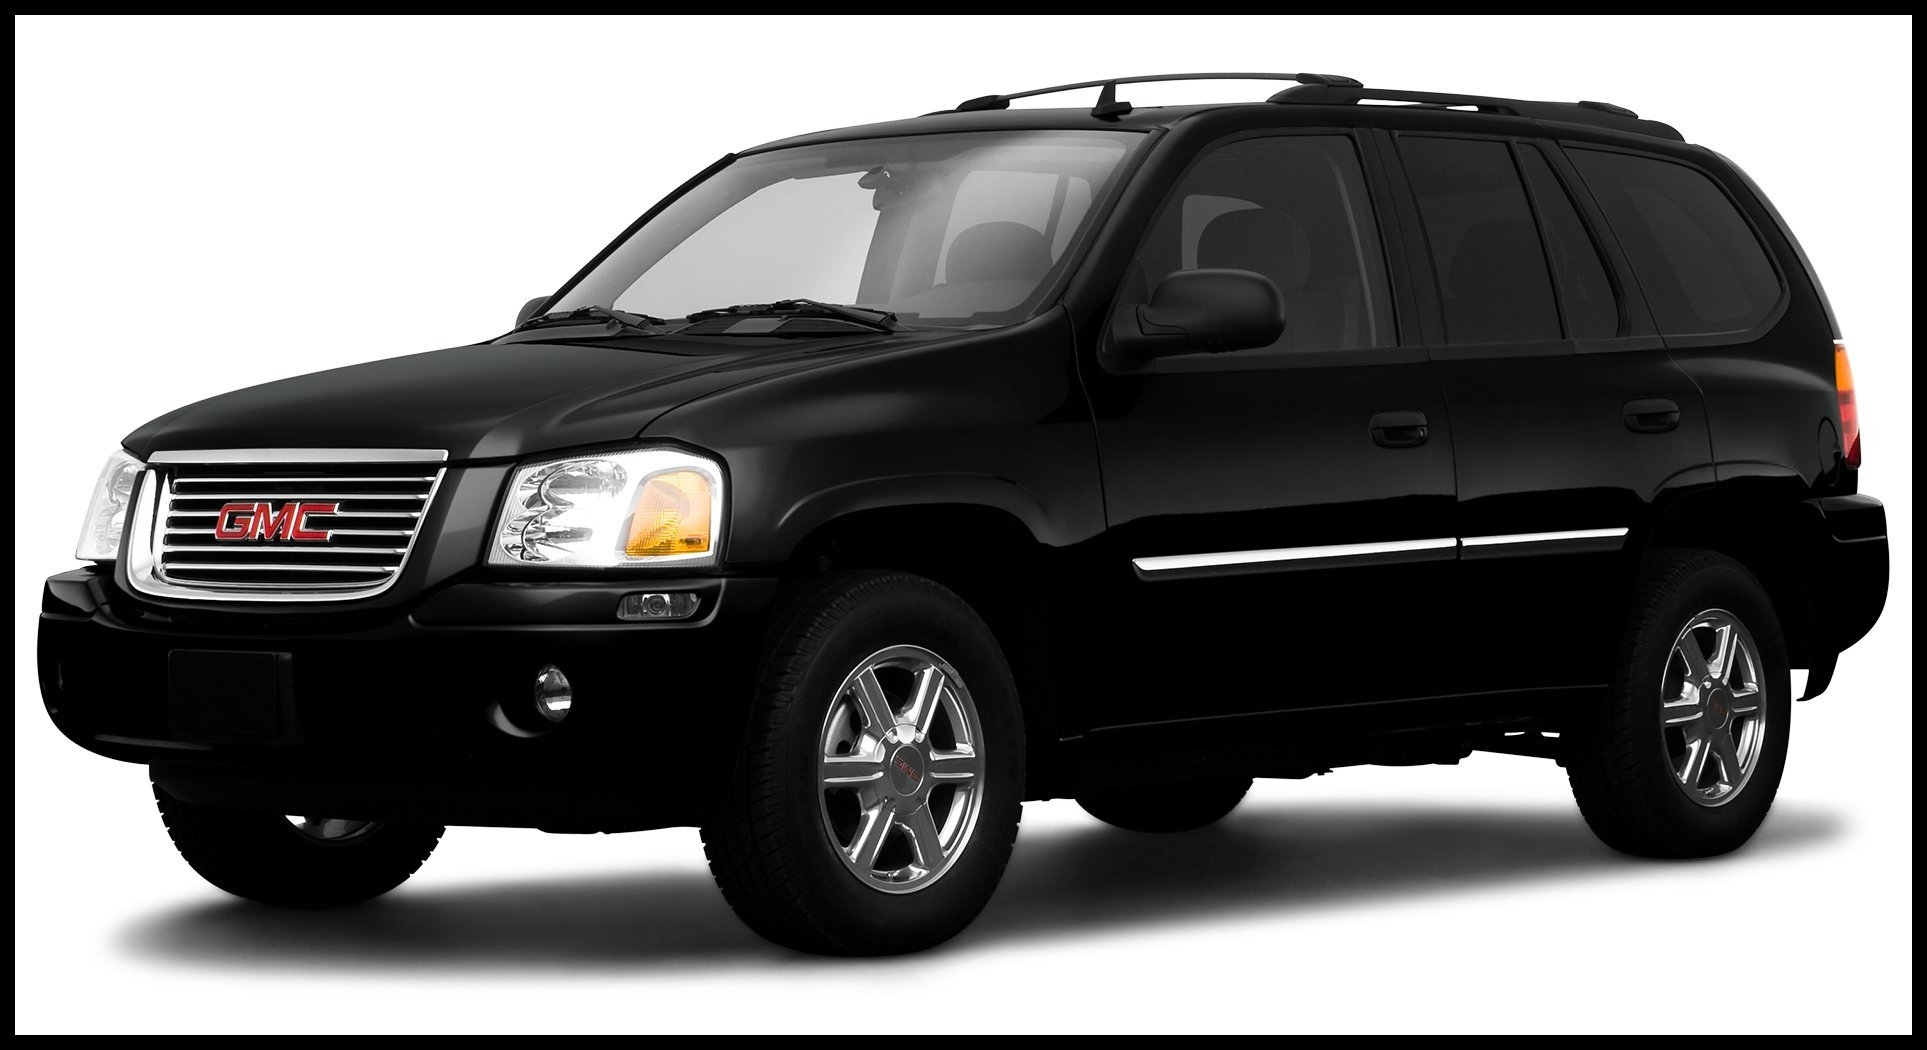 2009 GMC Envoy Denali 4 Wheel Drive 4 Door